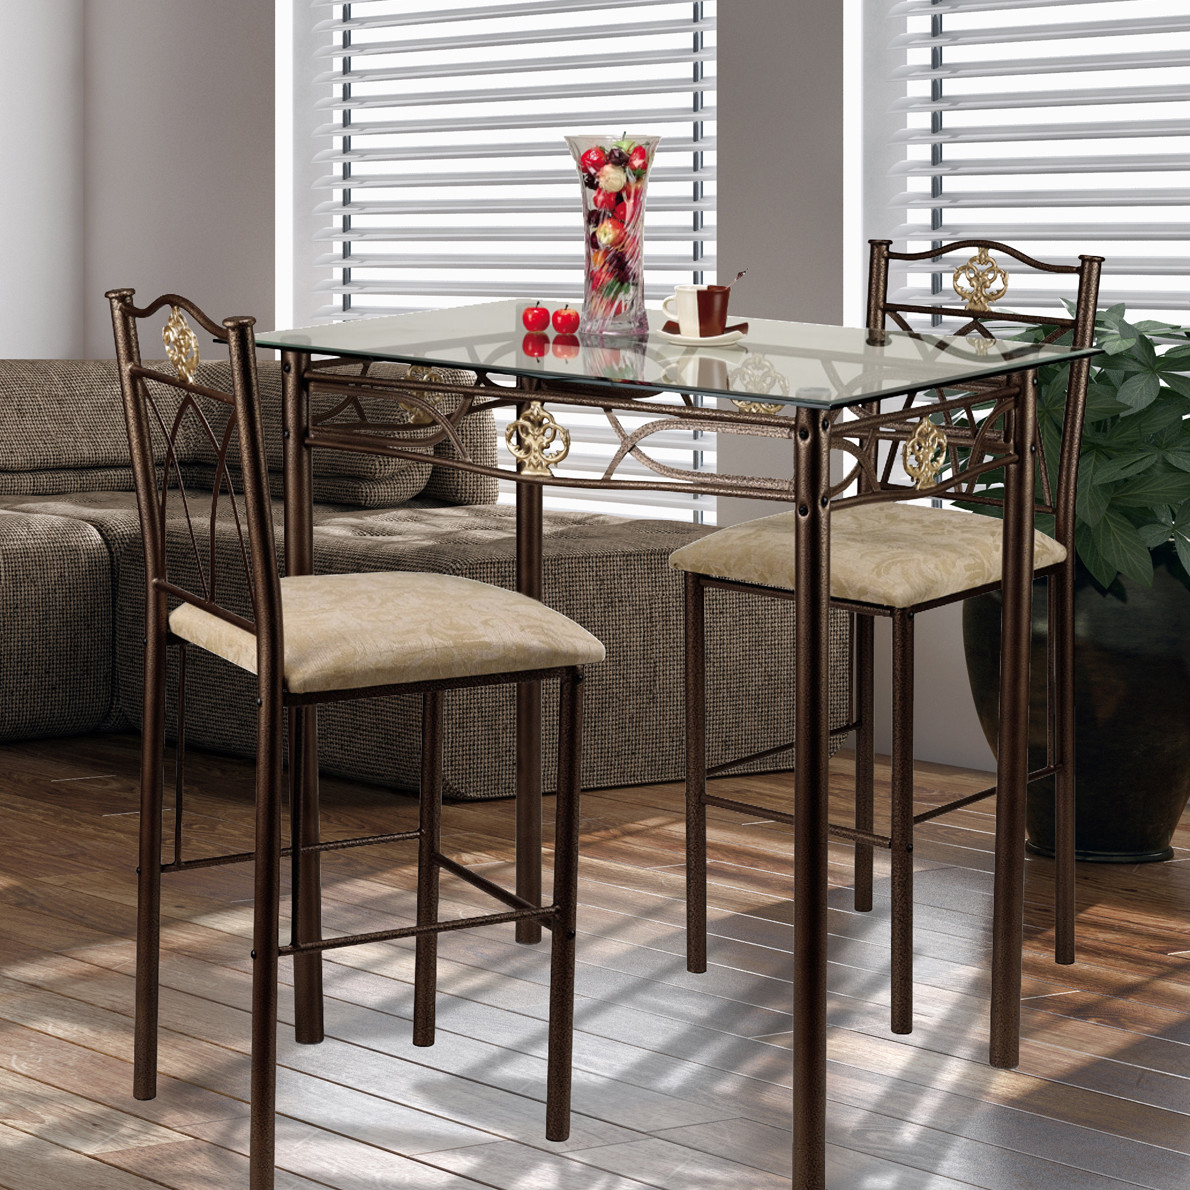 From Classic And Simple To Modern Style Of Small Pub Table Inside 2018 Dawid Counter Height Pedestal Dining Tables (View 6 of 15)